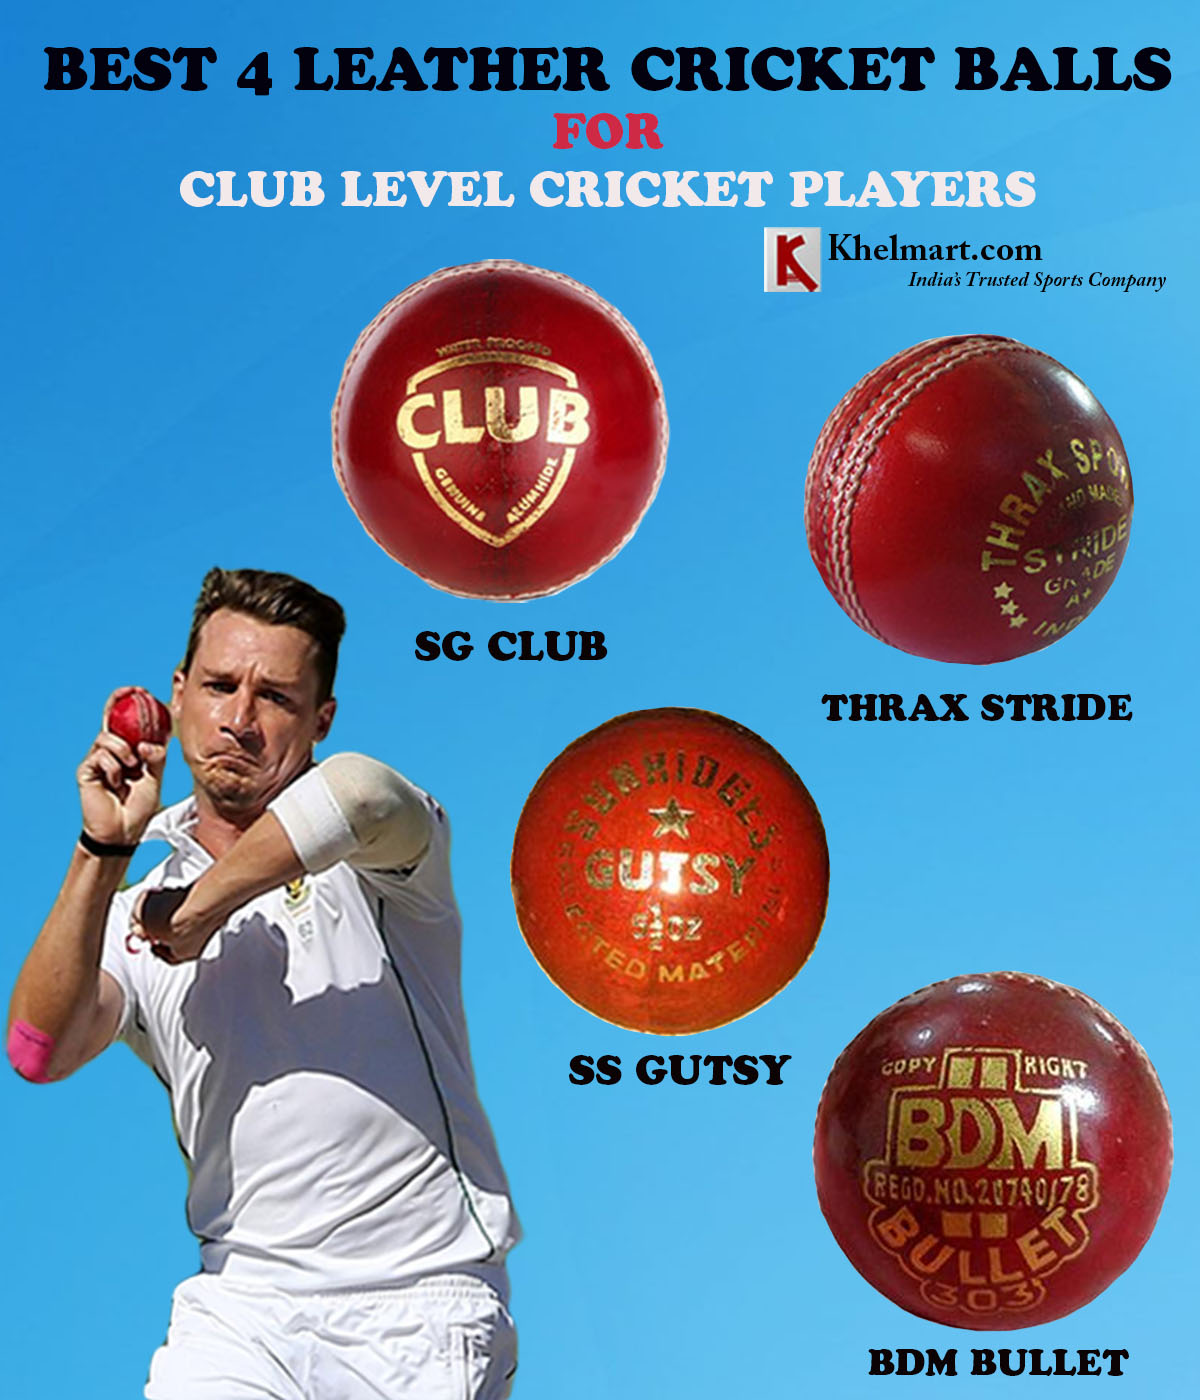 BEST 4 LEATHER CRICKET BALLS FOR CLUB LEVEL CRICKET PLAYERS